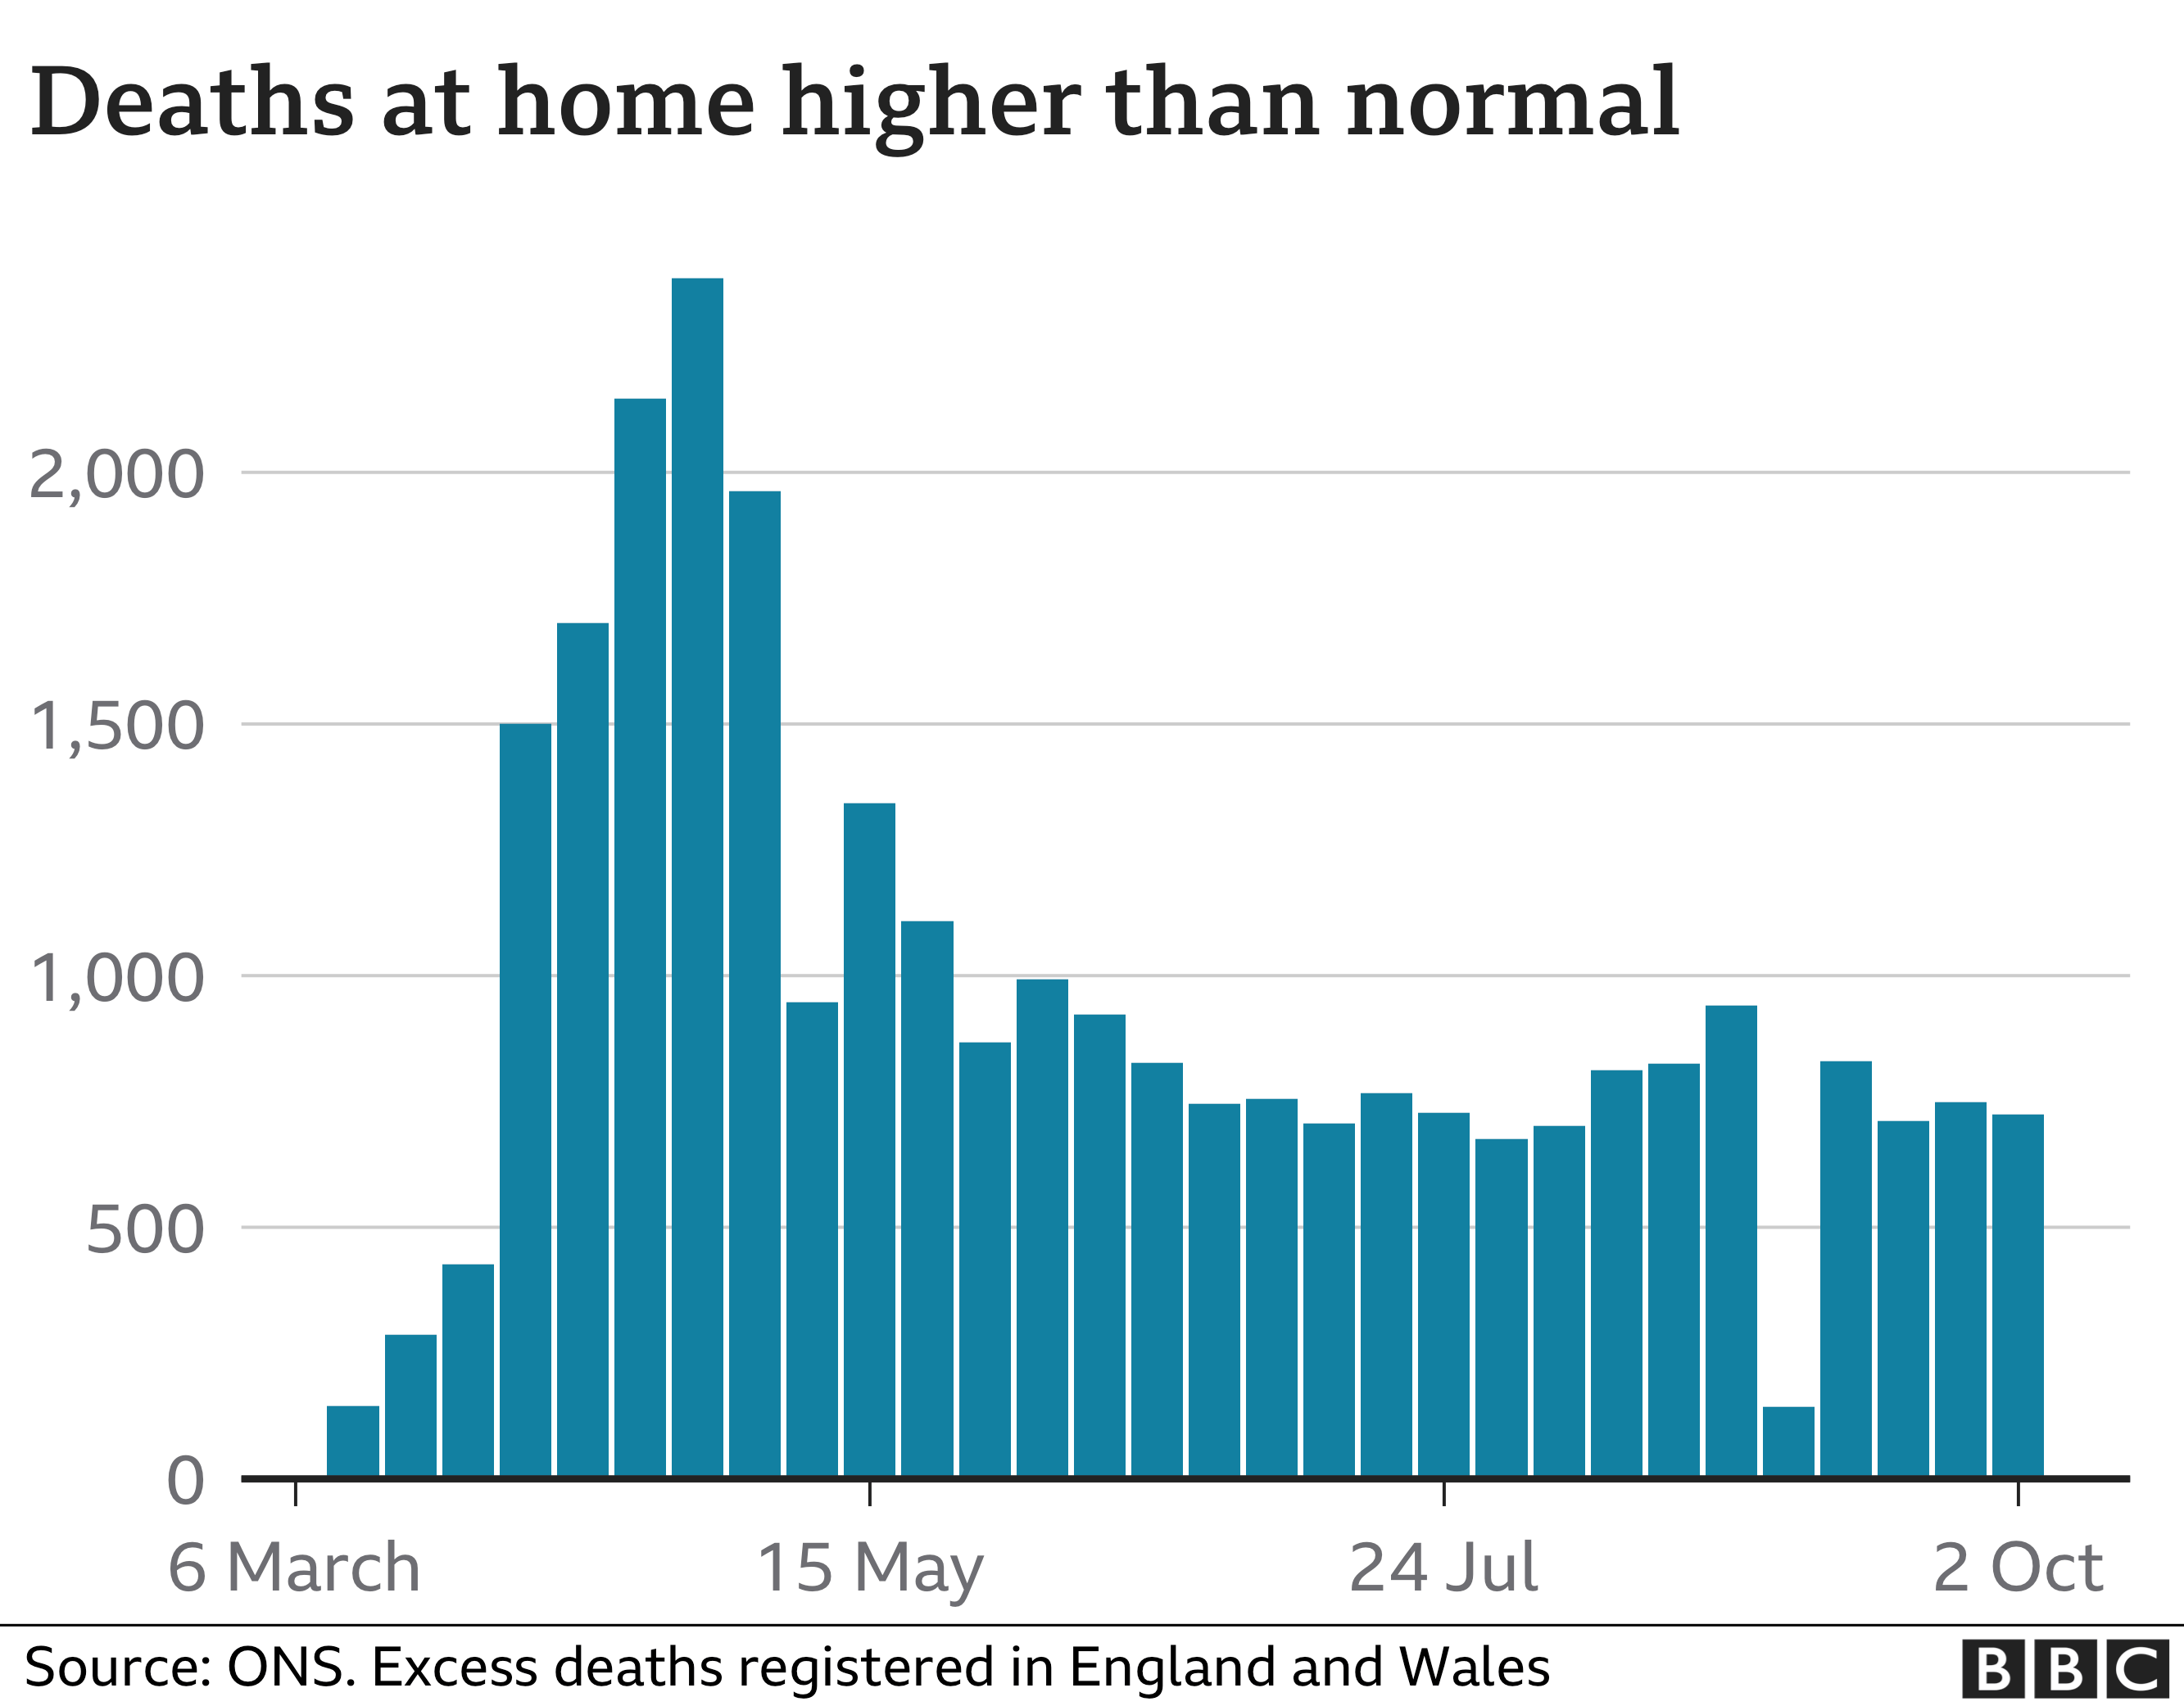 Chart showing deaths at home